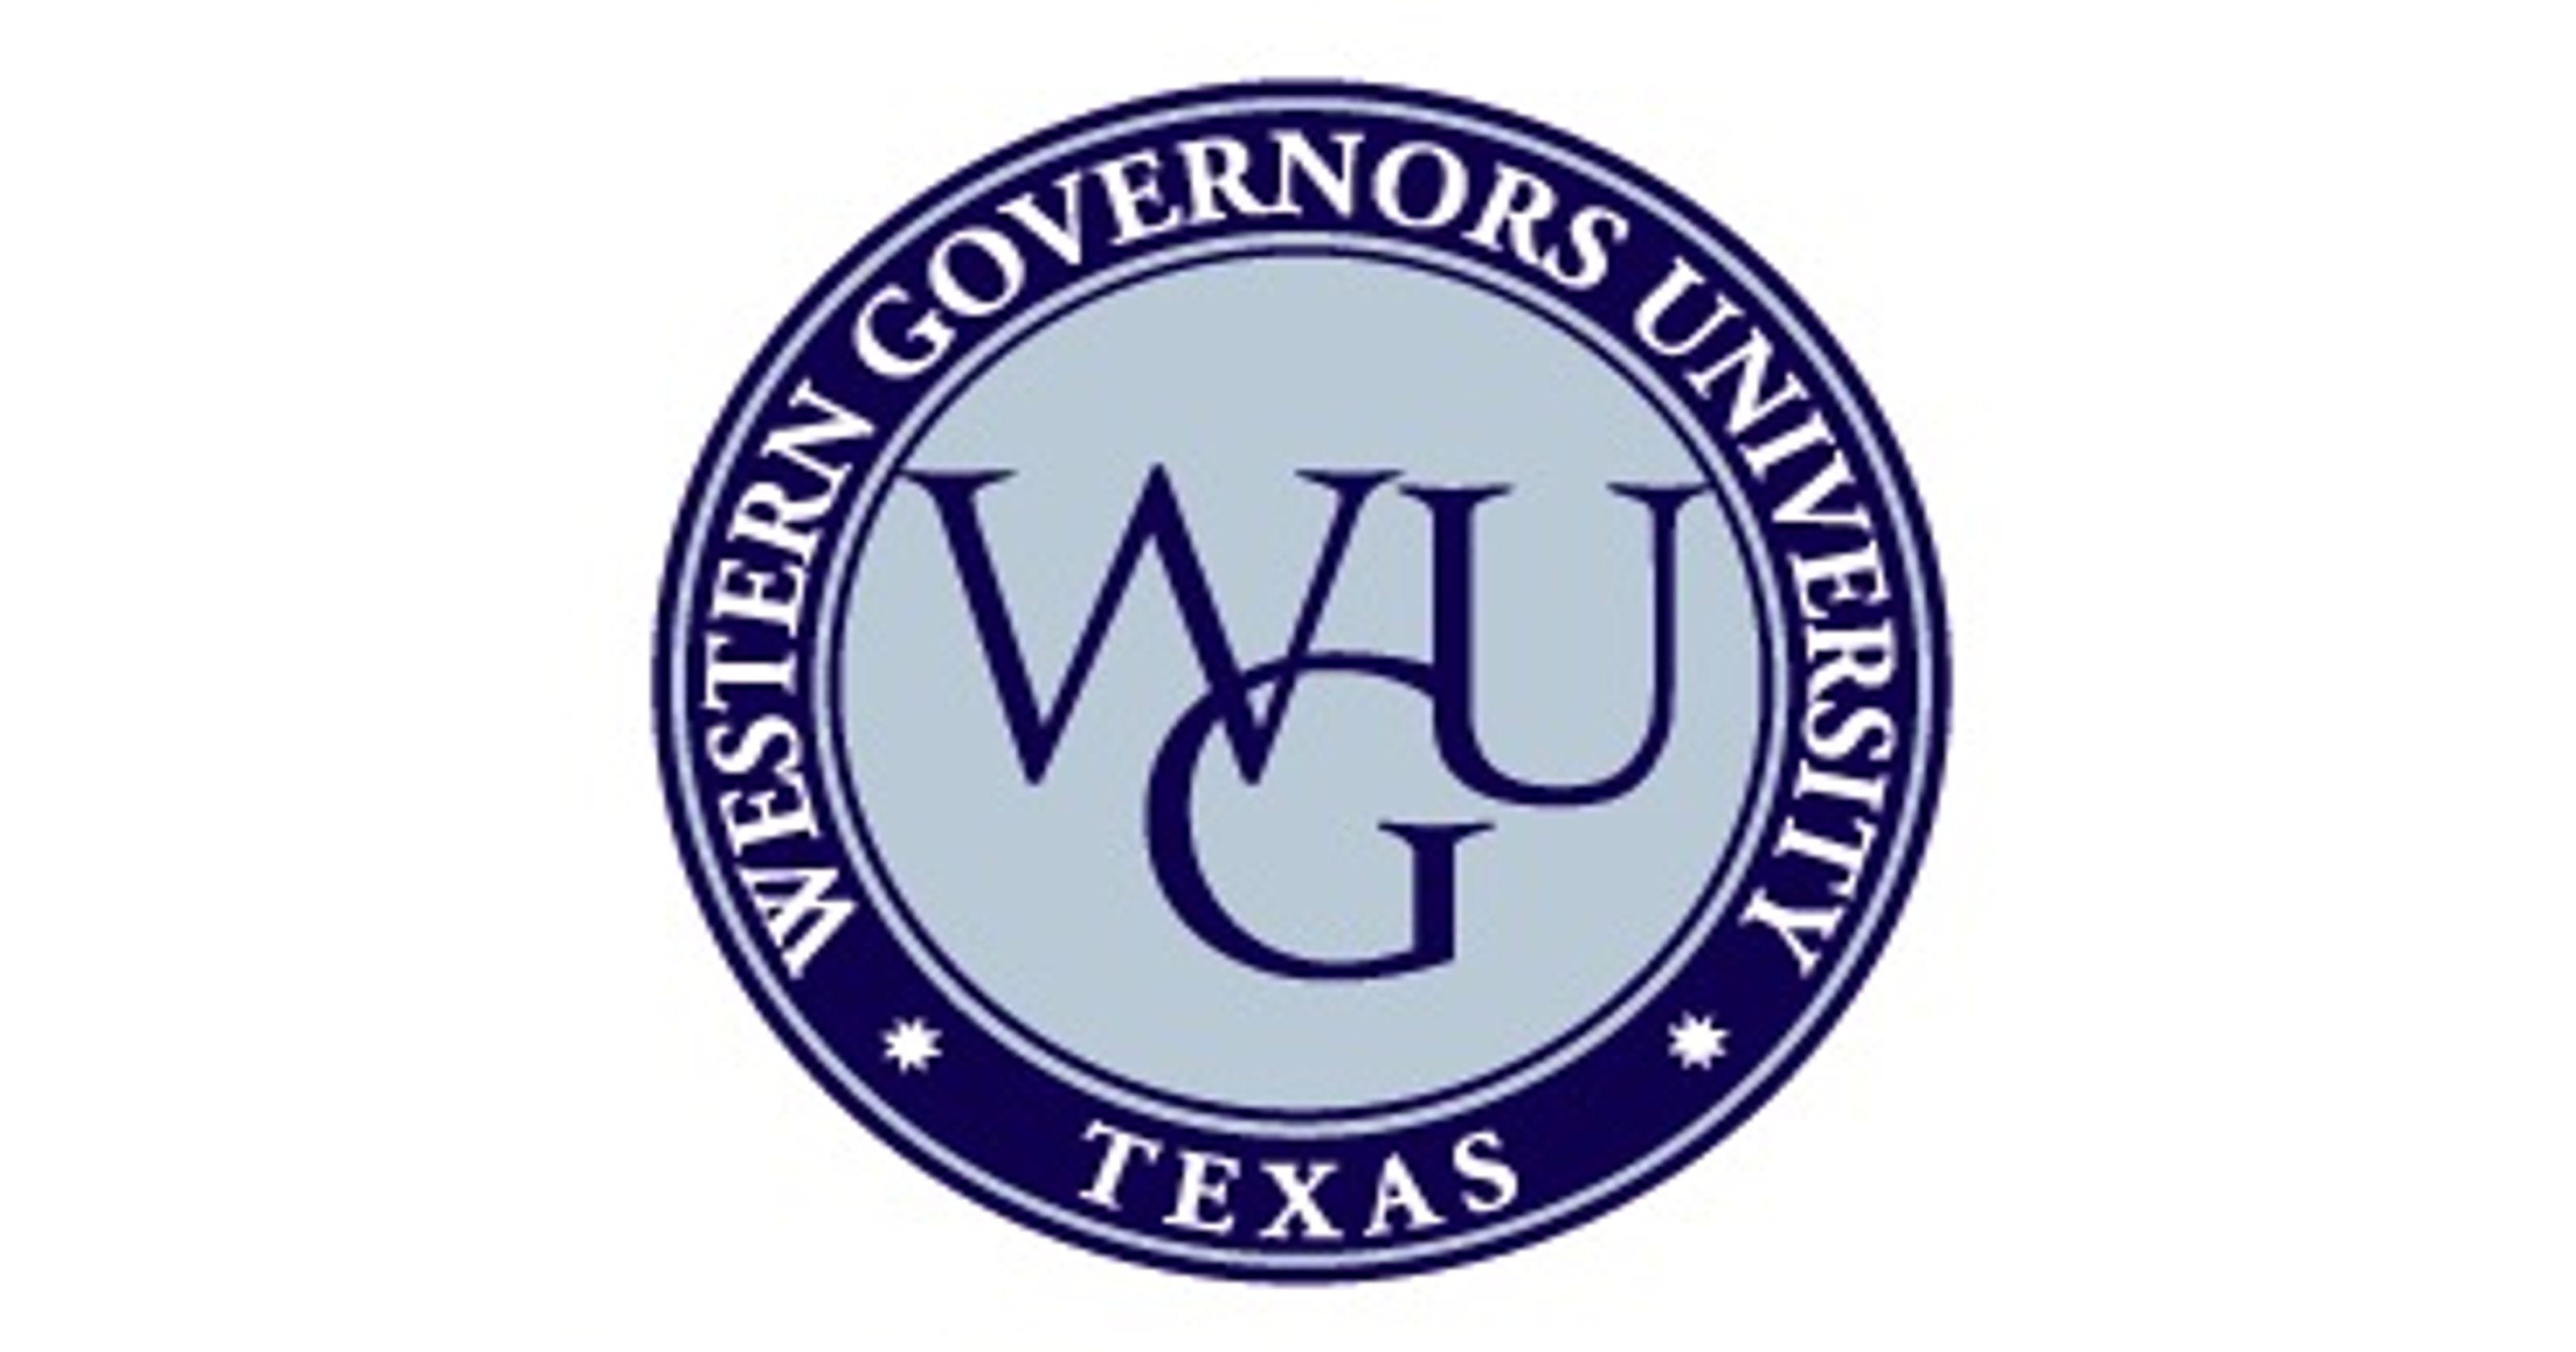 IN BRIEF: Last WGU El Paso scholarship awarded